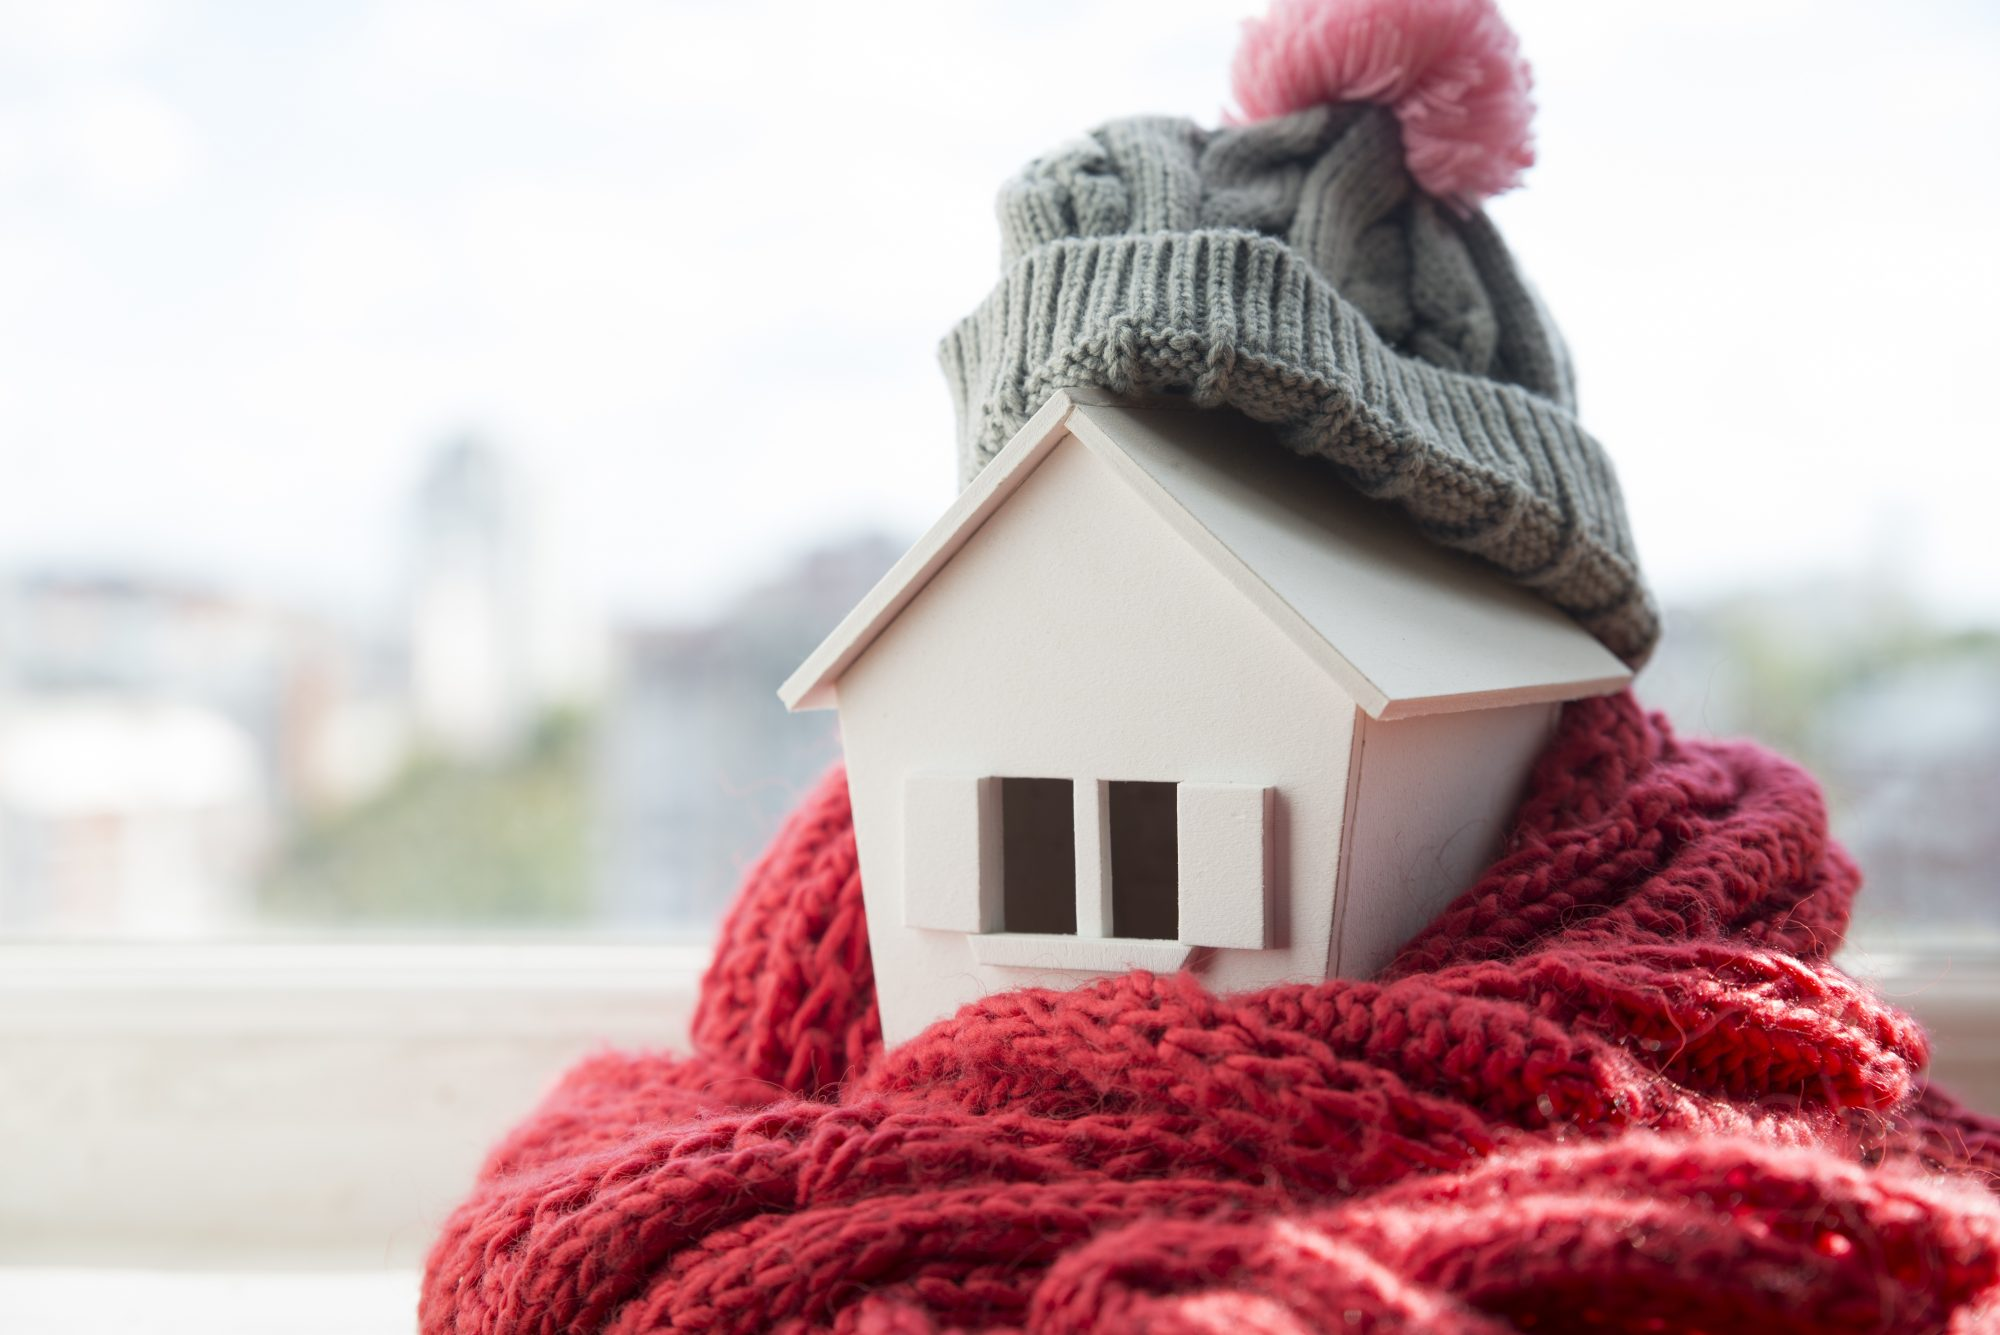 Winterize your home house winterization cold weather warm home DIY